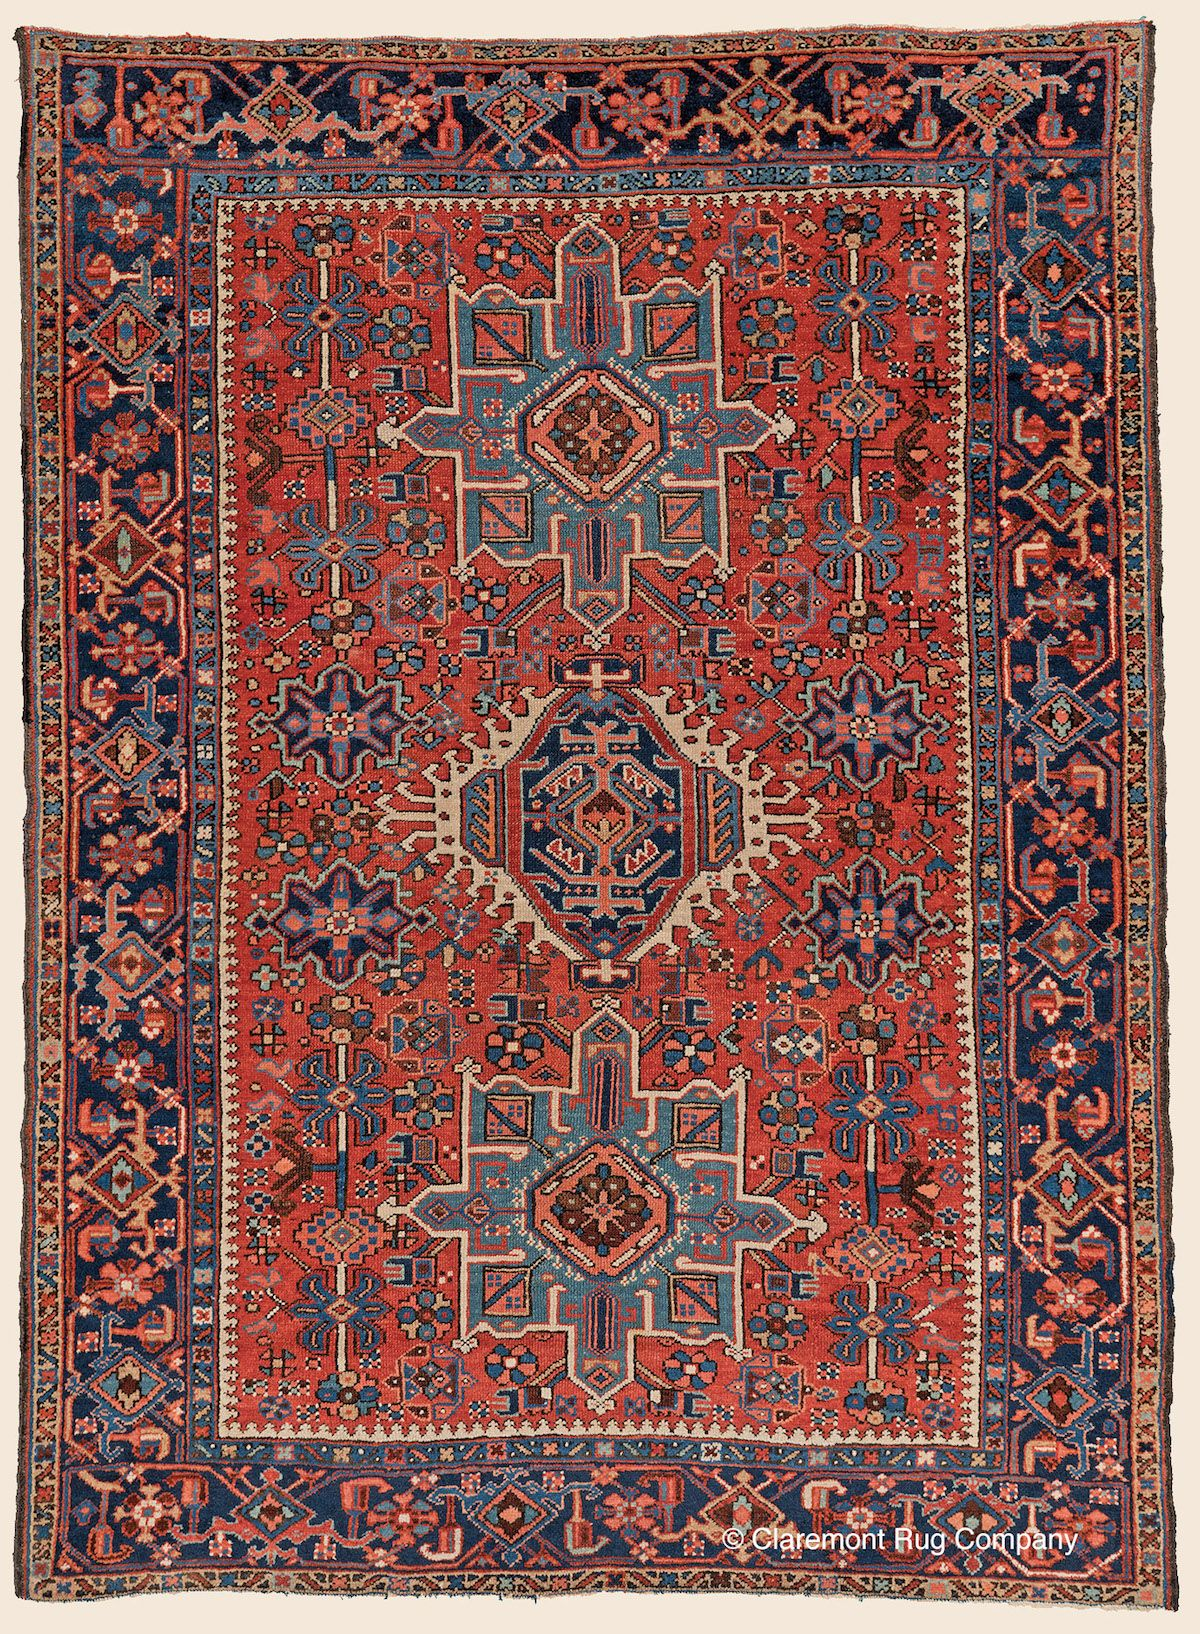 Karaja 4 10 X 6 6 Circa 1900 Price 6 500 Northwest Persian Antique Rug Claremont Rug Company Rugs Claremont Rug Company Antique Rugs